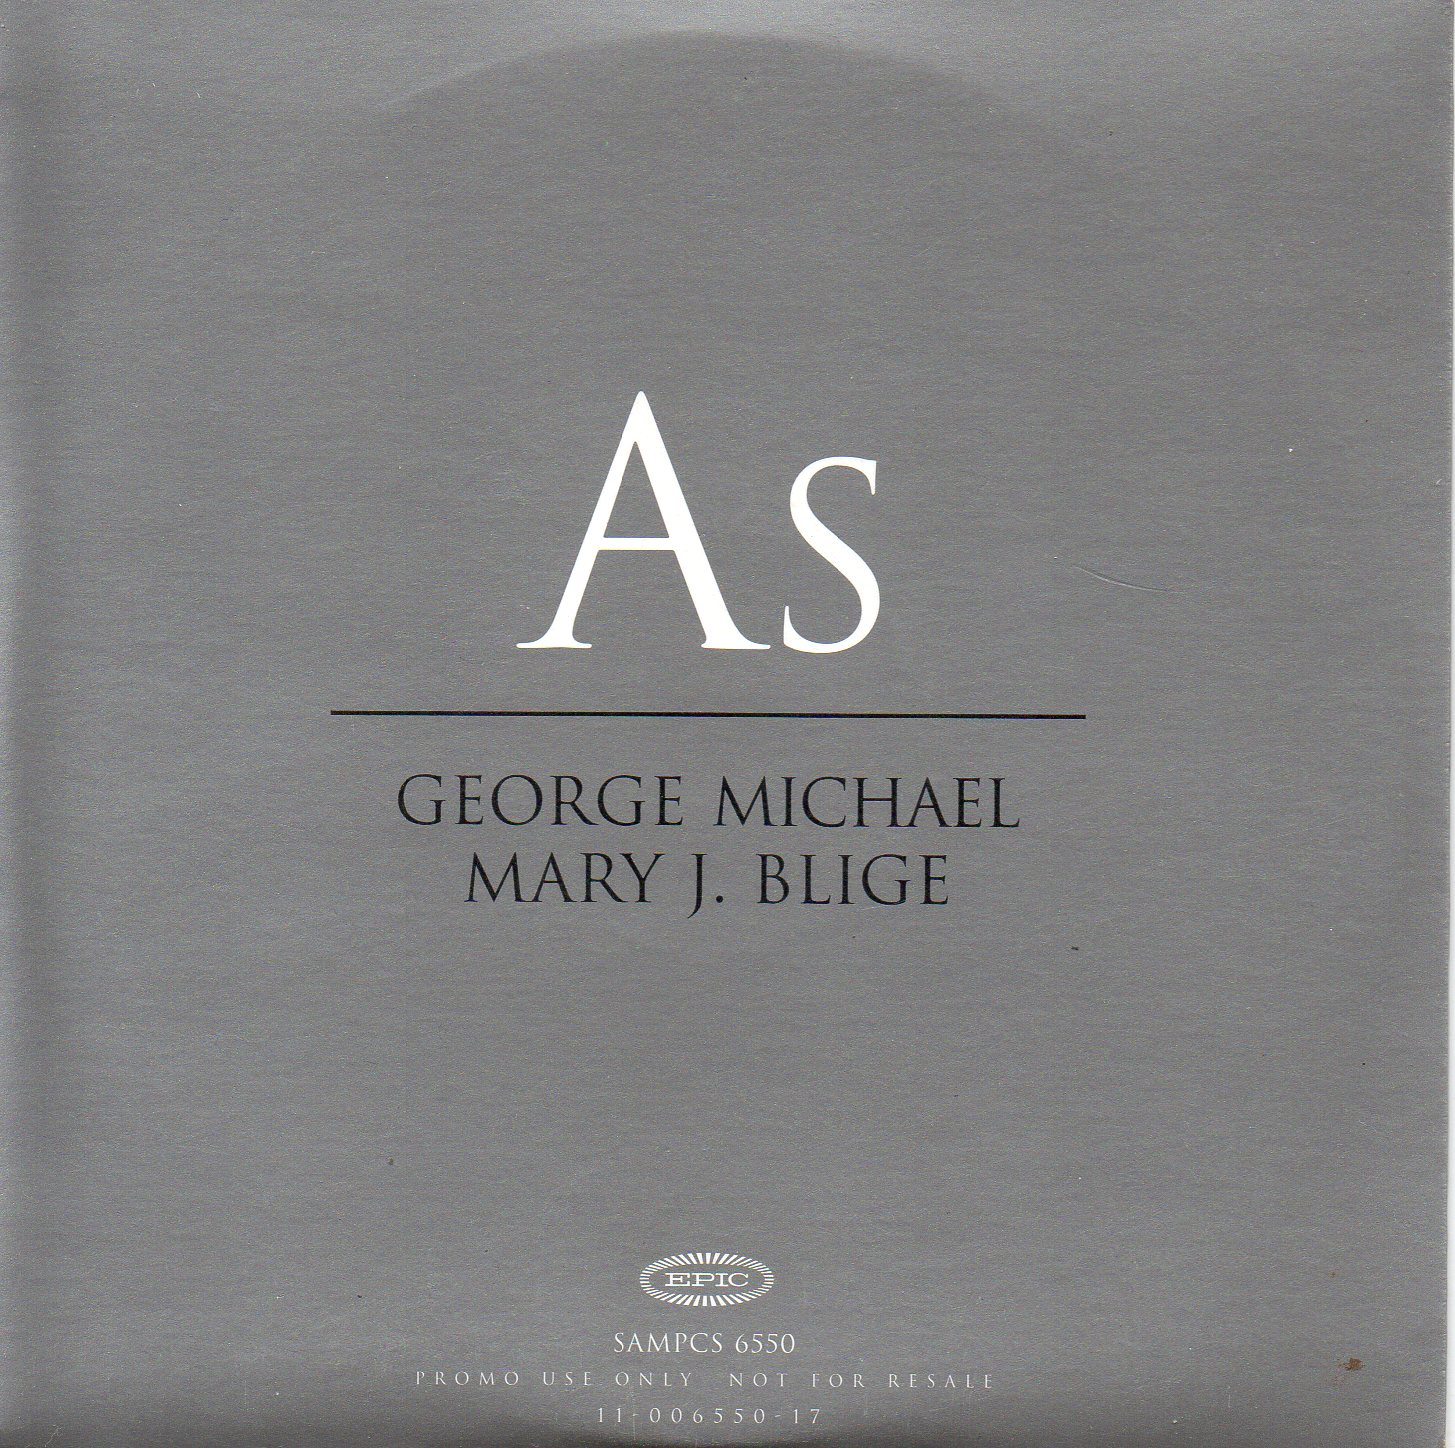 George MICHAEL &amp; Mary J. BLIGE - As Promo 1-track Card Sleeve